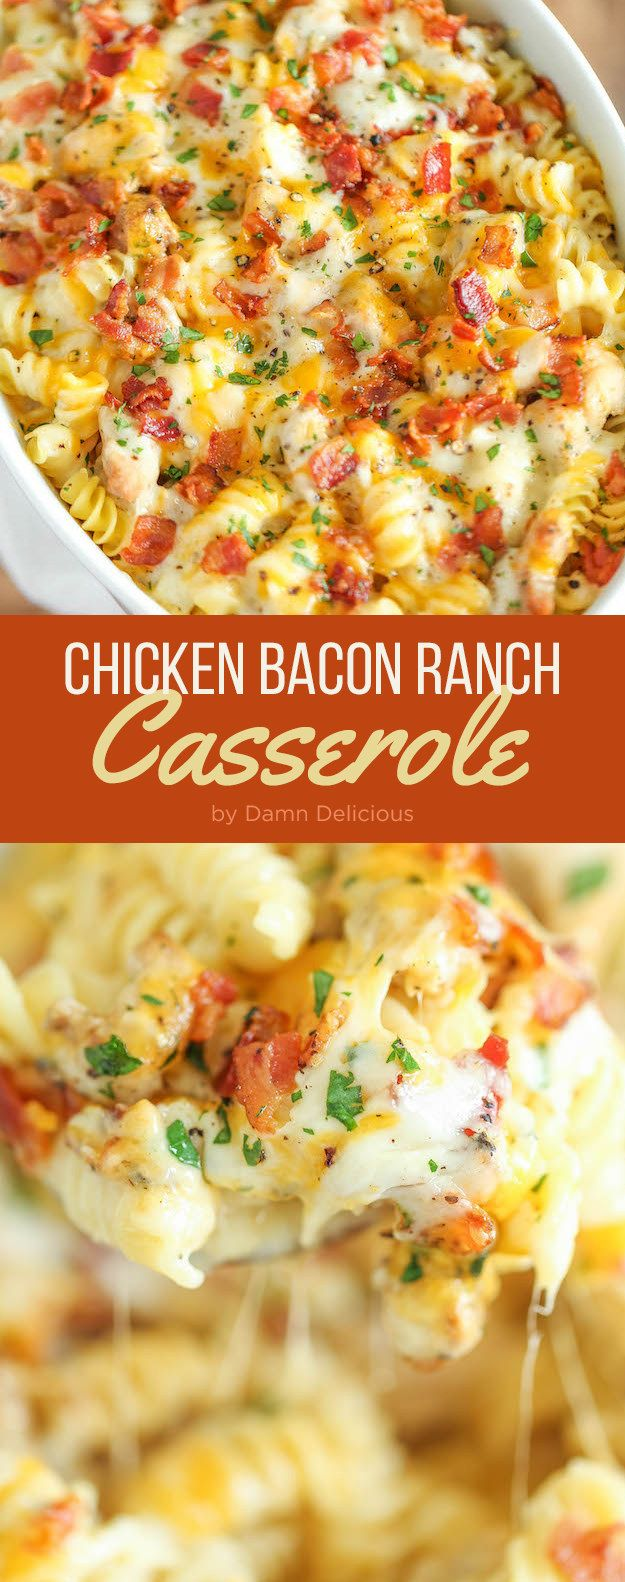 102 best food images on pinterest find this pin and more on food these 7 awesome easy weeknight dinners forumfinder